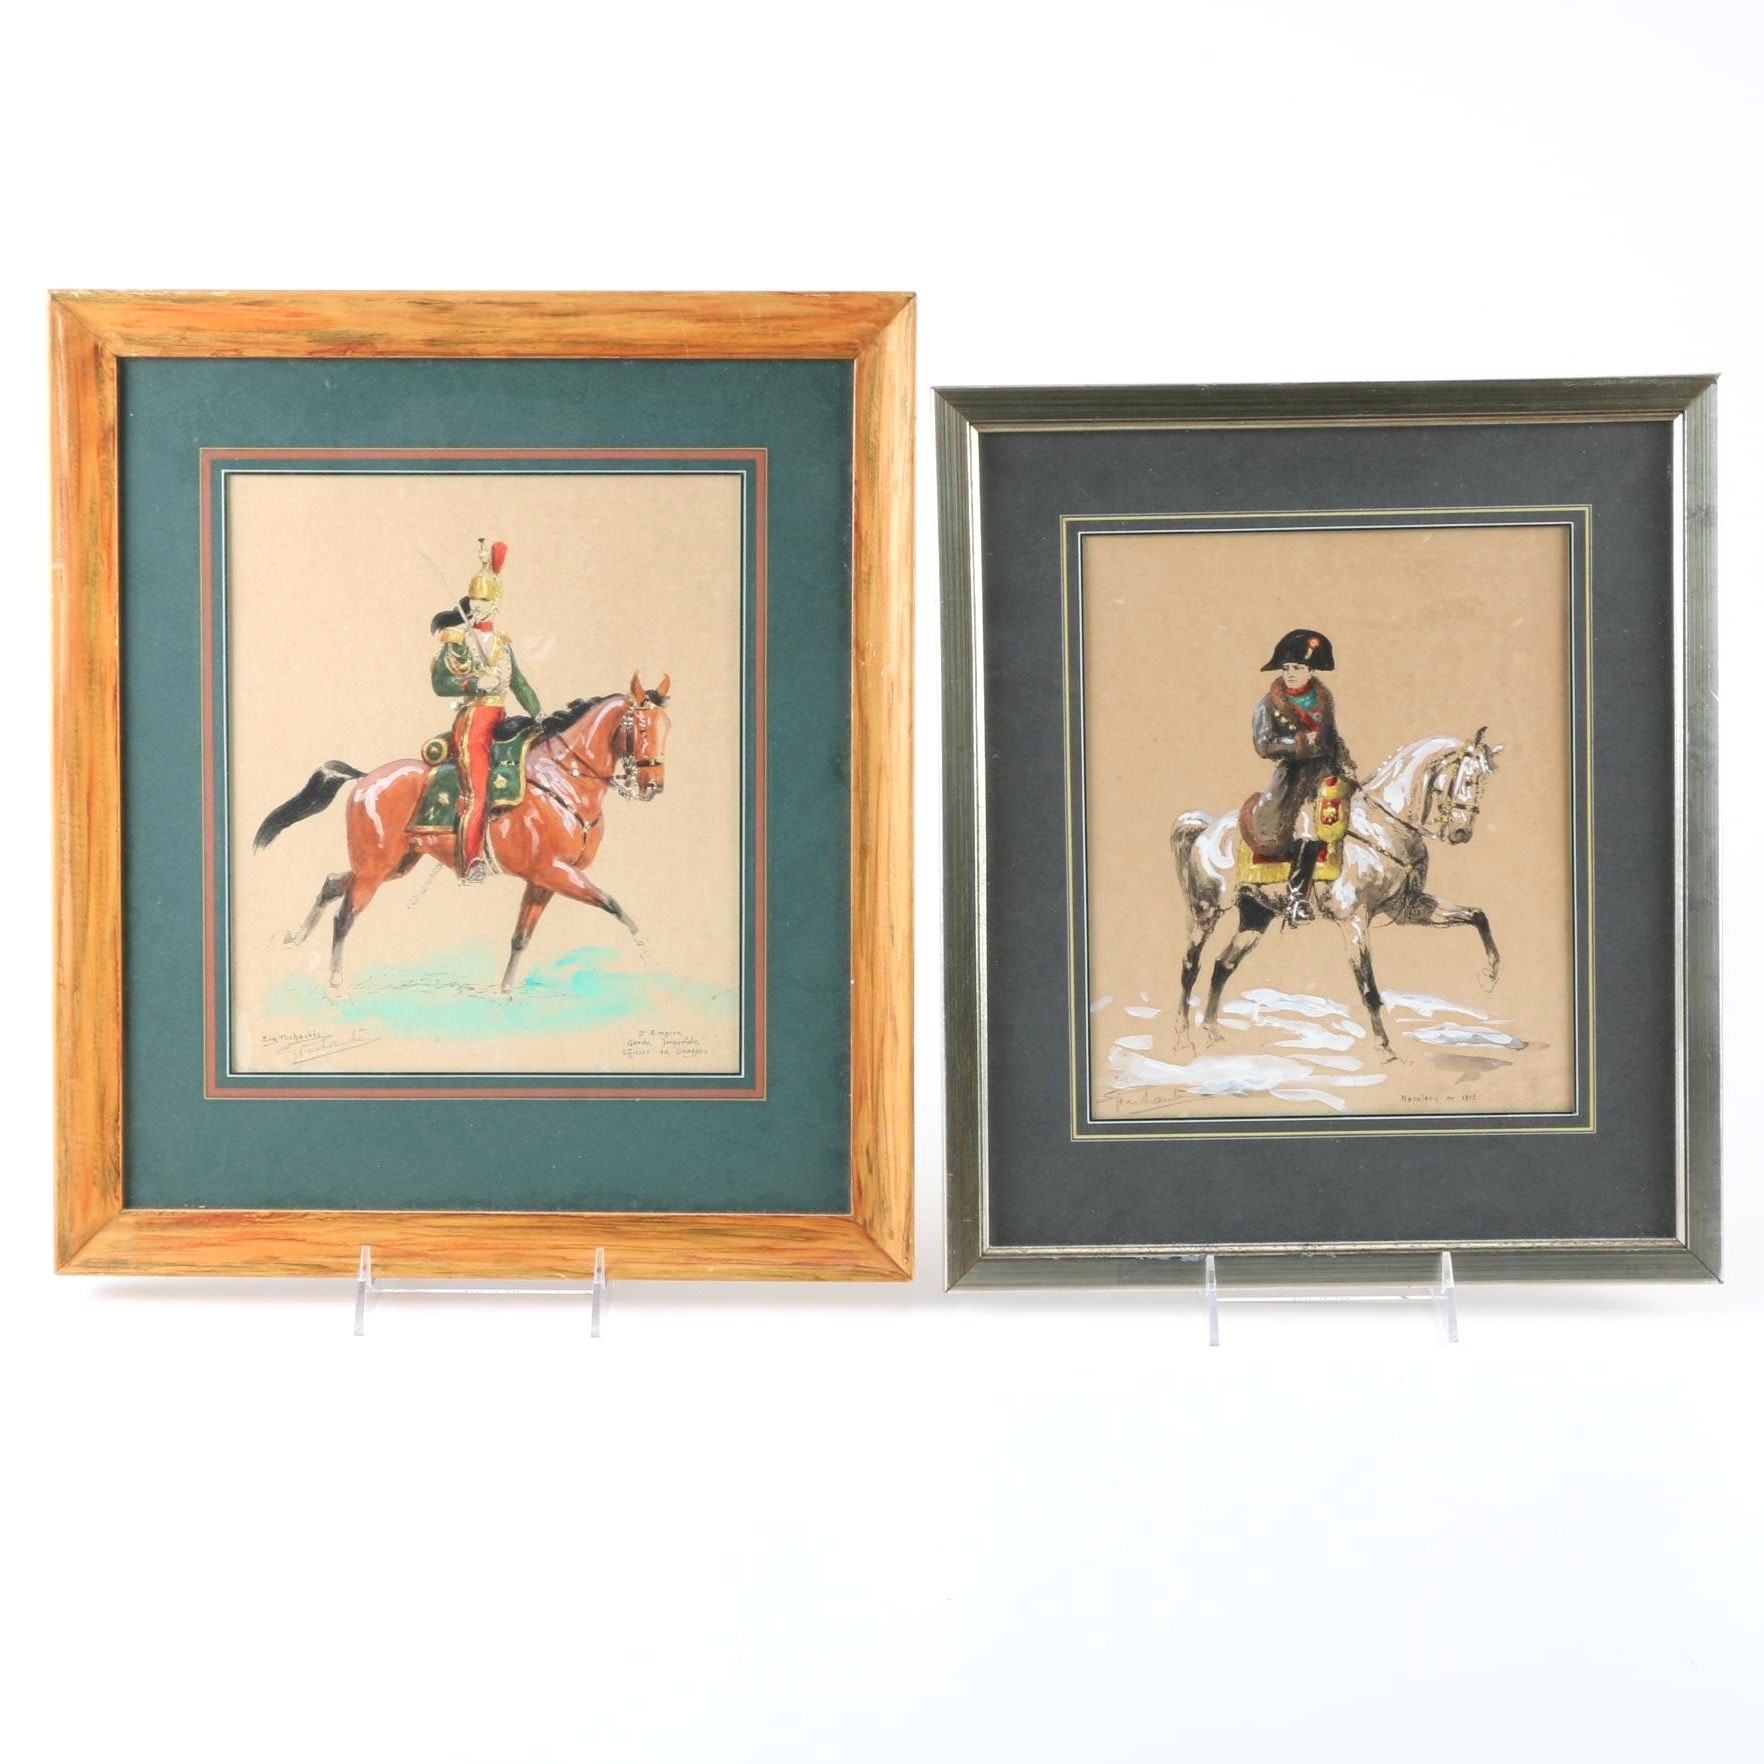 Eugene Pechaubes Hand-Colored Lithographs